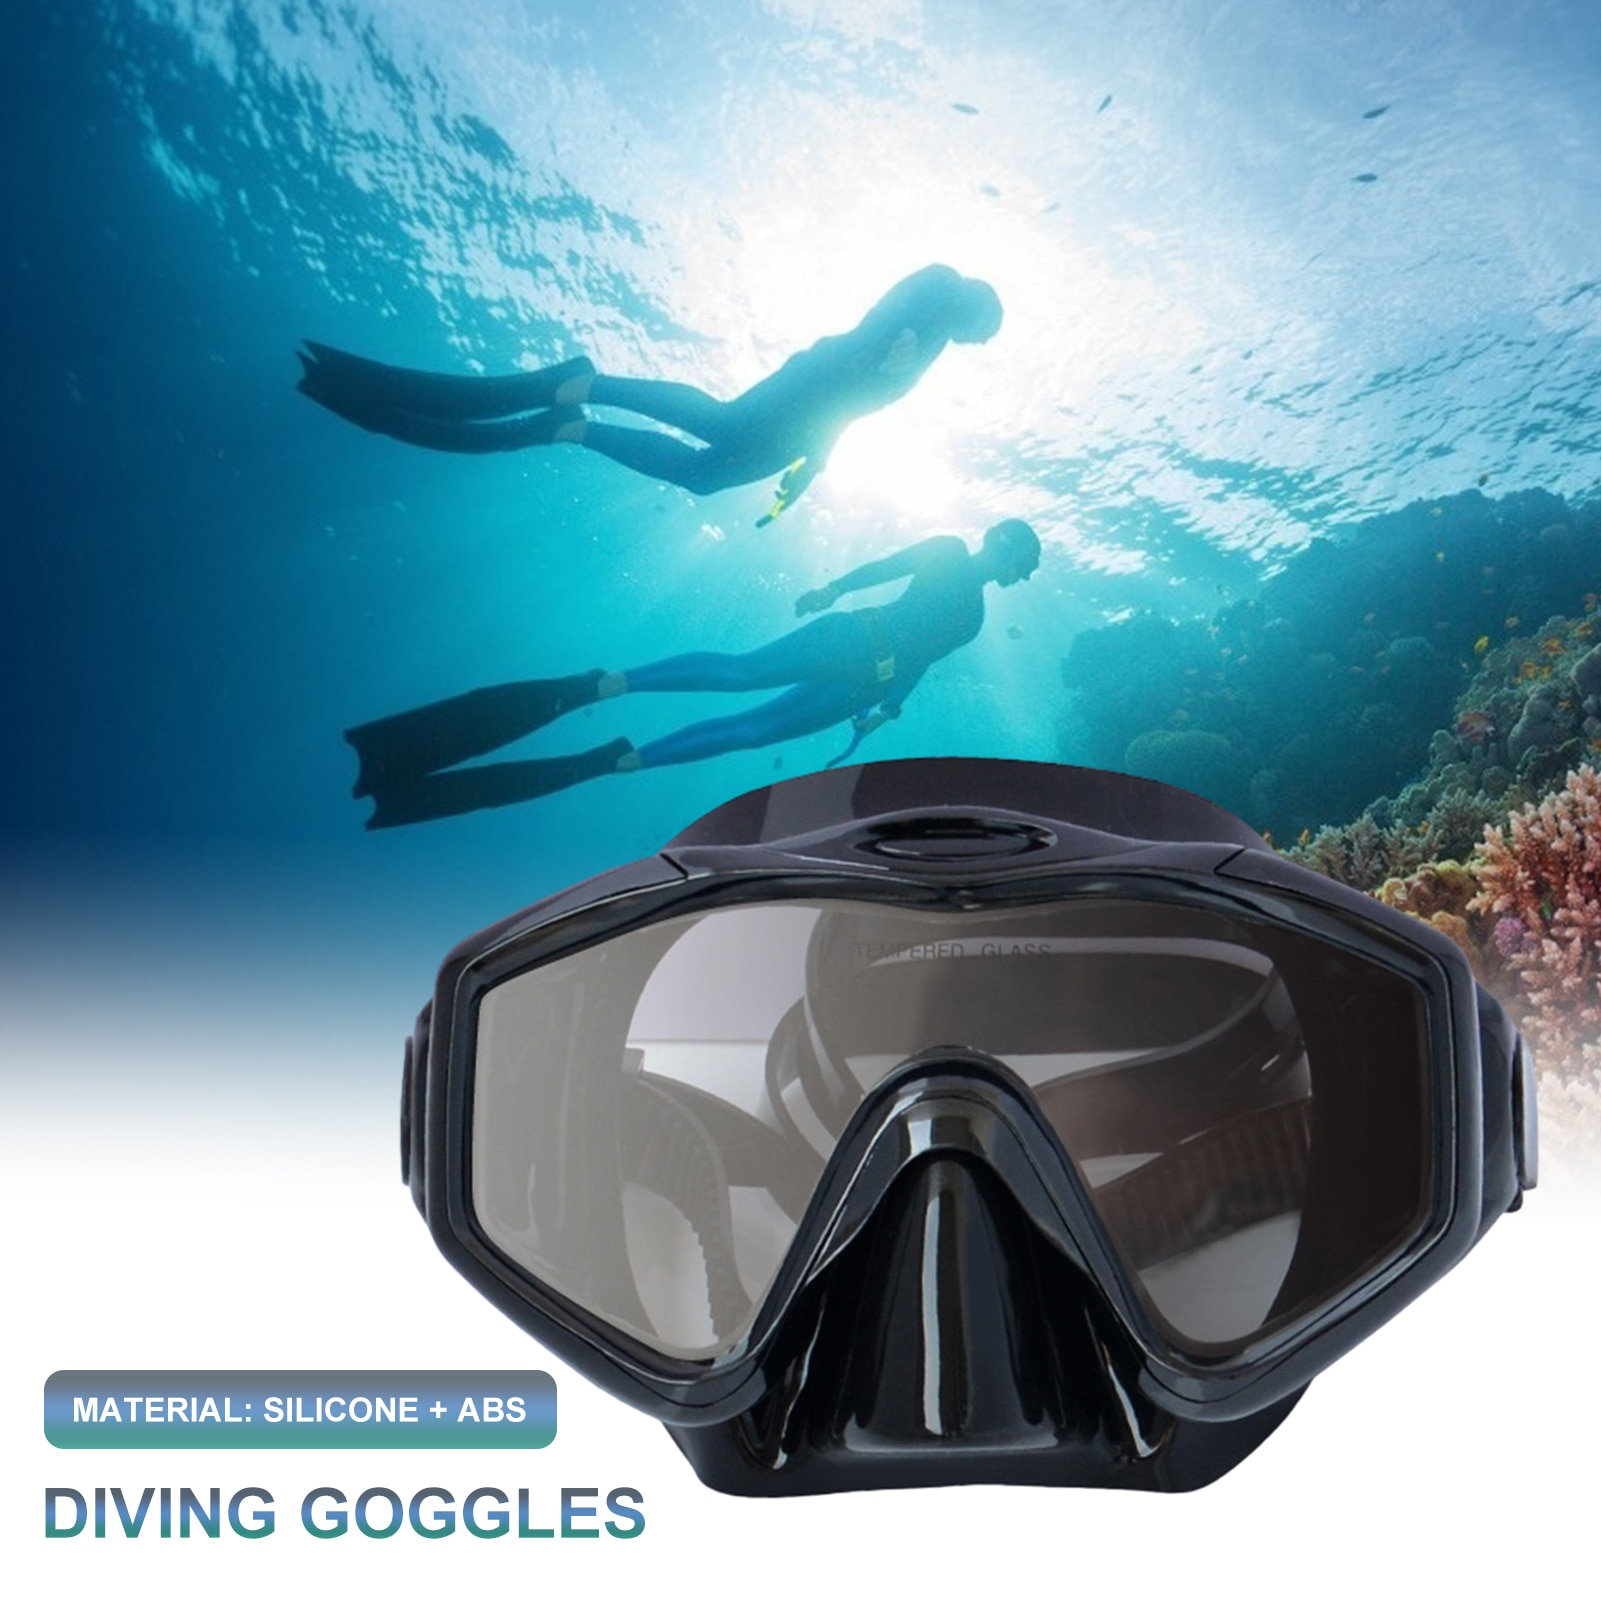 Adult snorkeling 3D diving goggles silicone + ABS portable adjustable wide-angle swimming underwater life-saving diving goggles